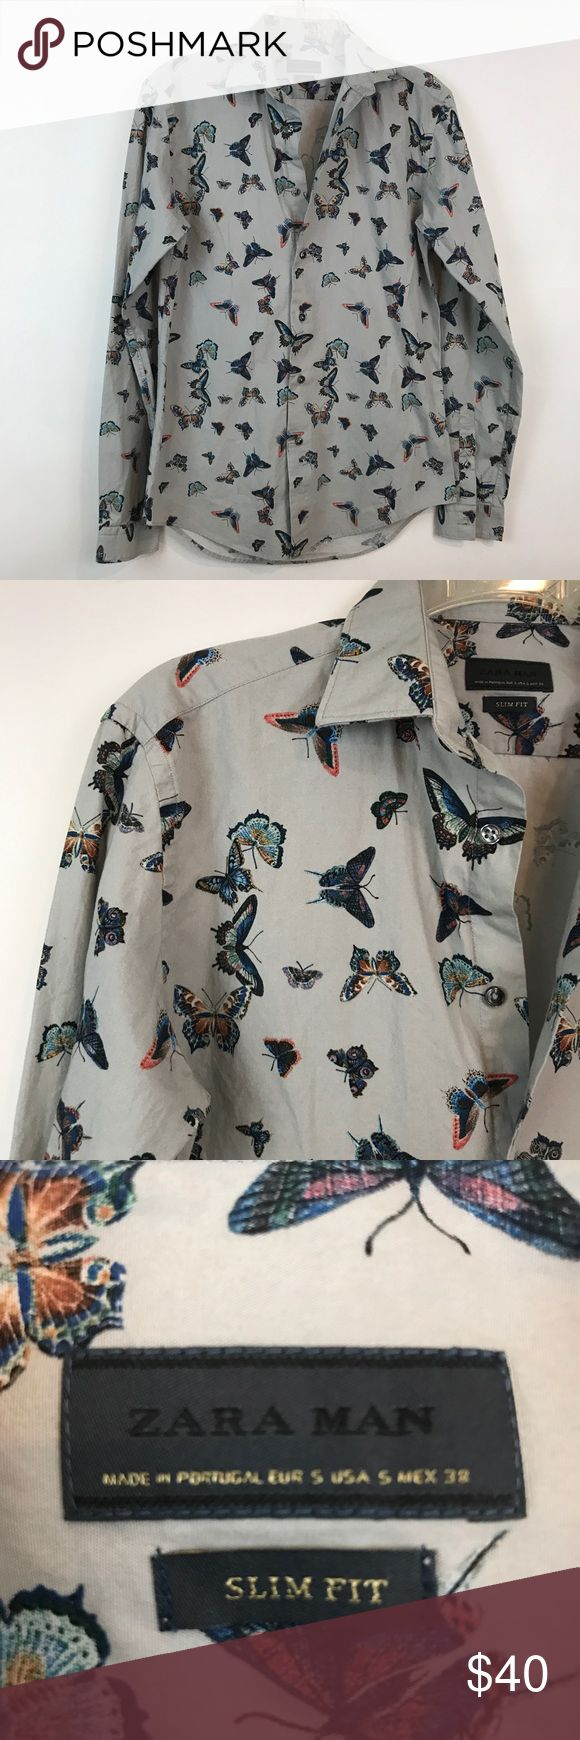 "ZARA MAN | Slim Fit Butterfly Button Down B36 Condition: Excellent pre owned condition Measurements (laying flat): 19.5"" pit to pit 29"" length  Item location: bin 36 Zara Shirts Casual Button Down Shirts"